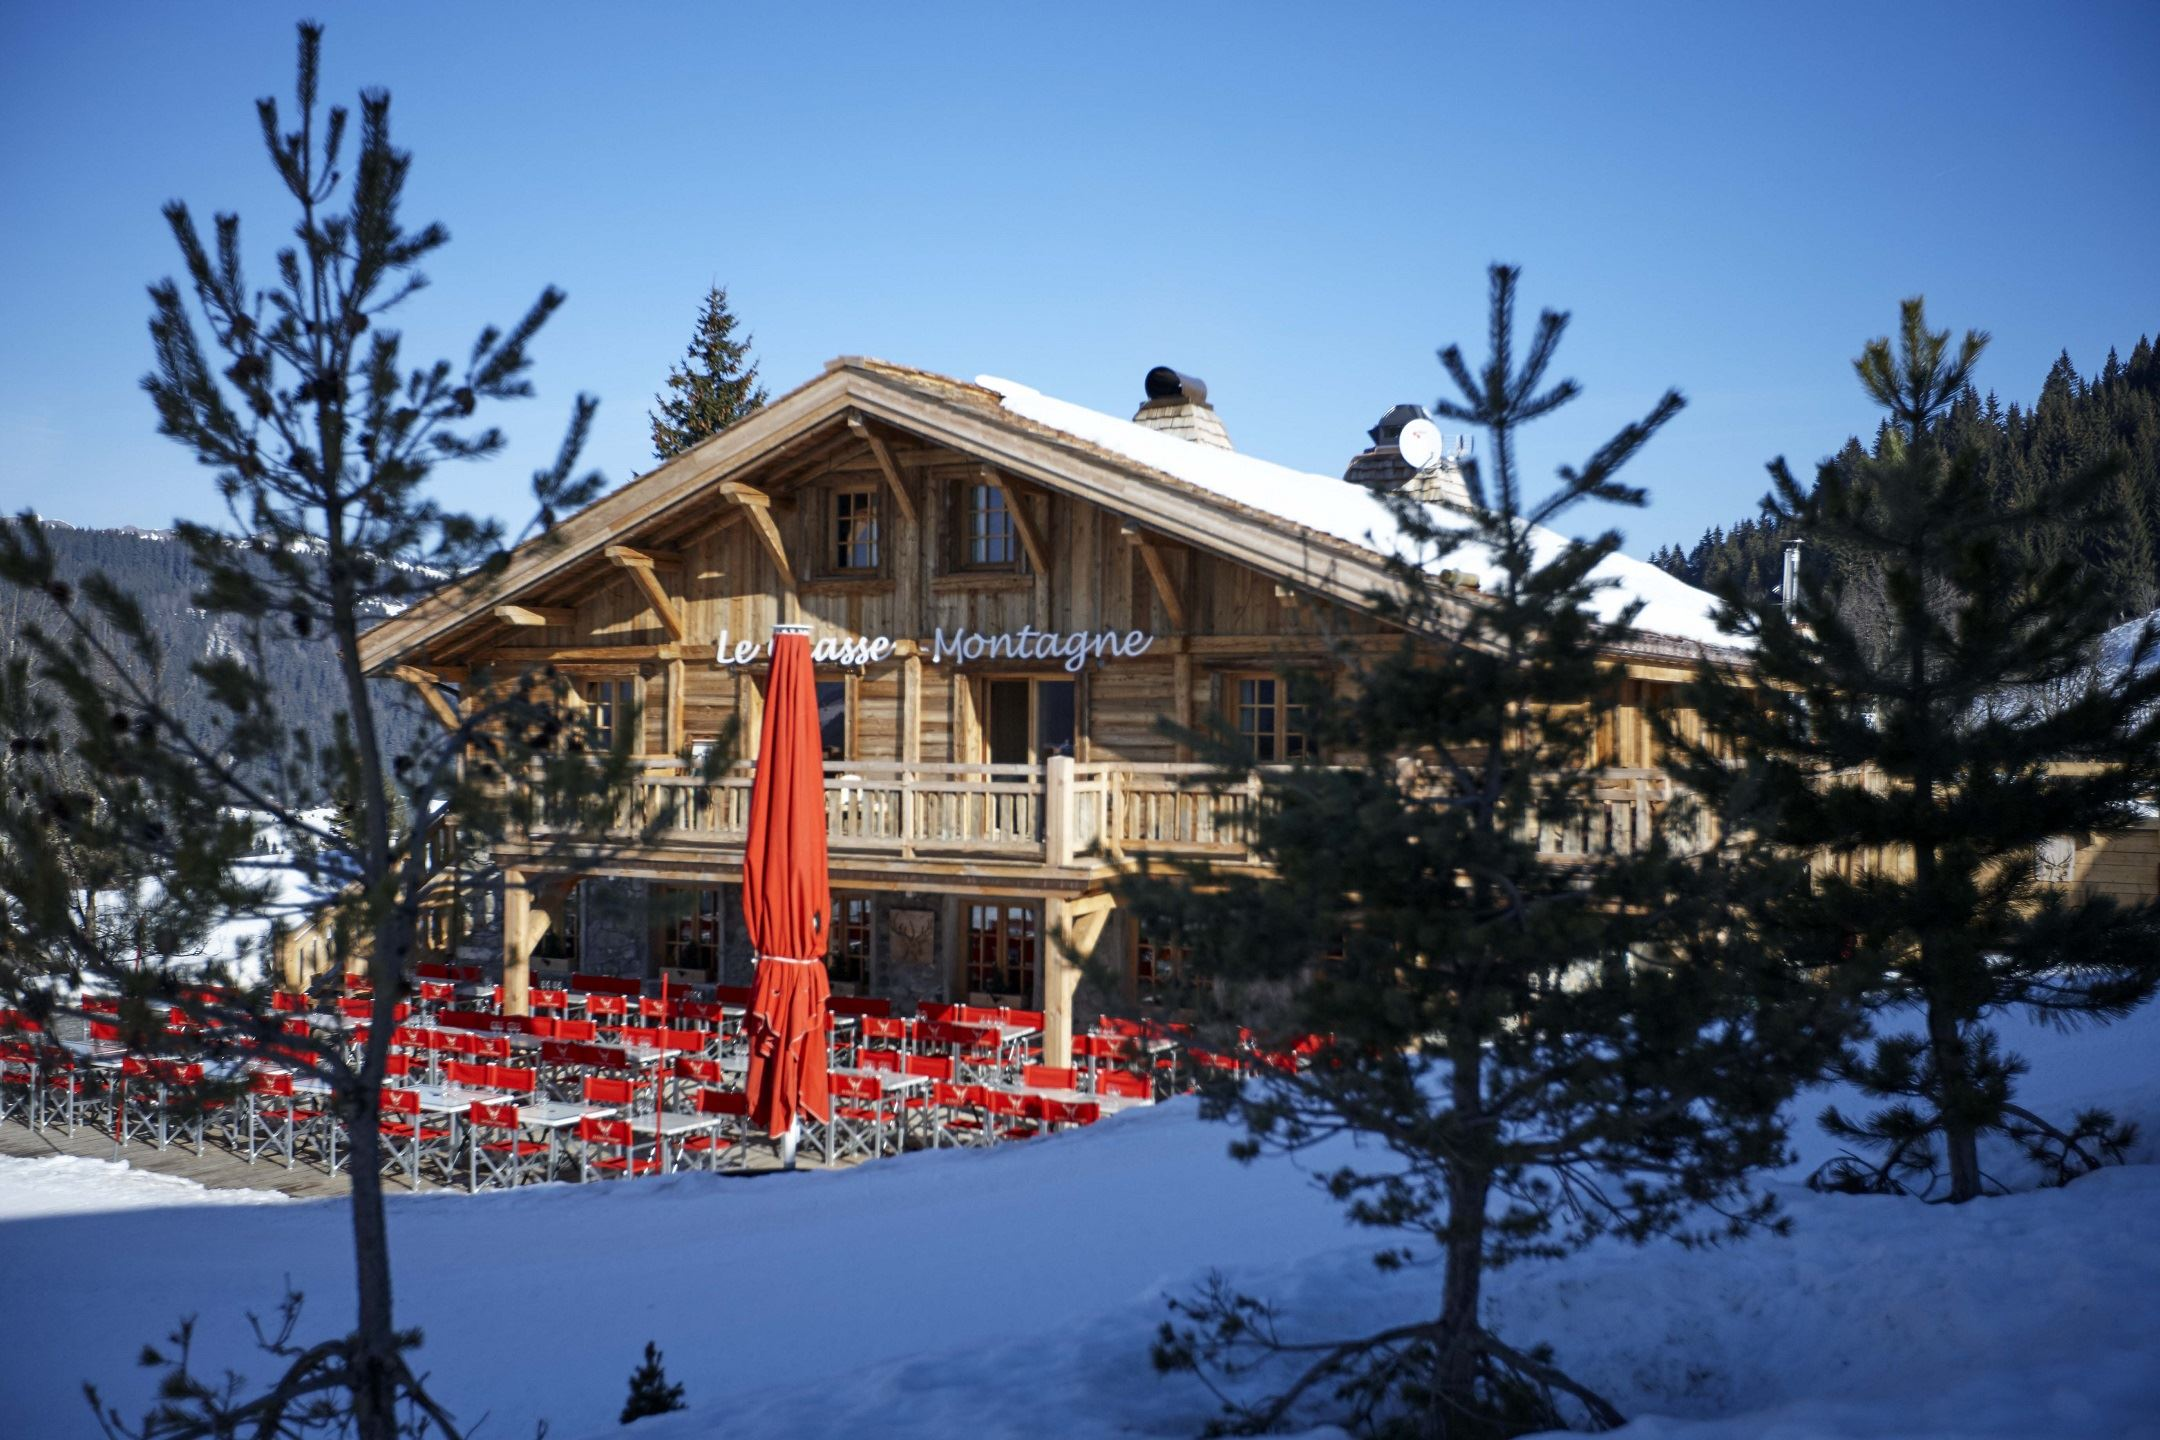 Lodge Chasse Montagne